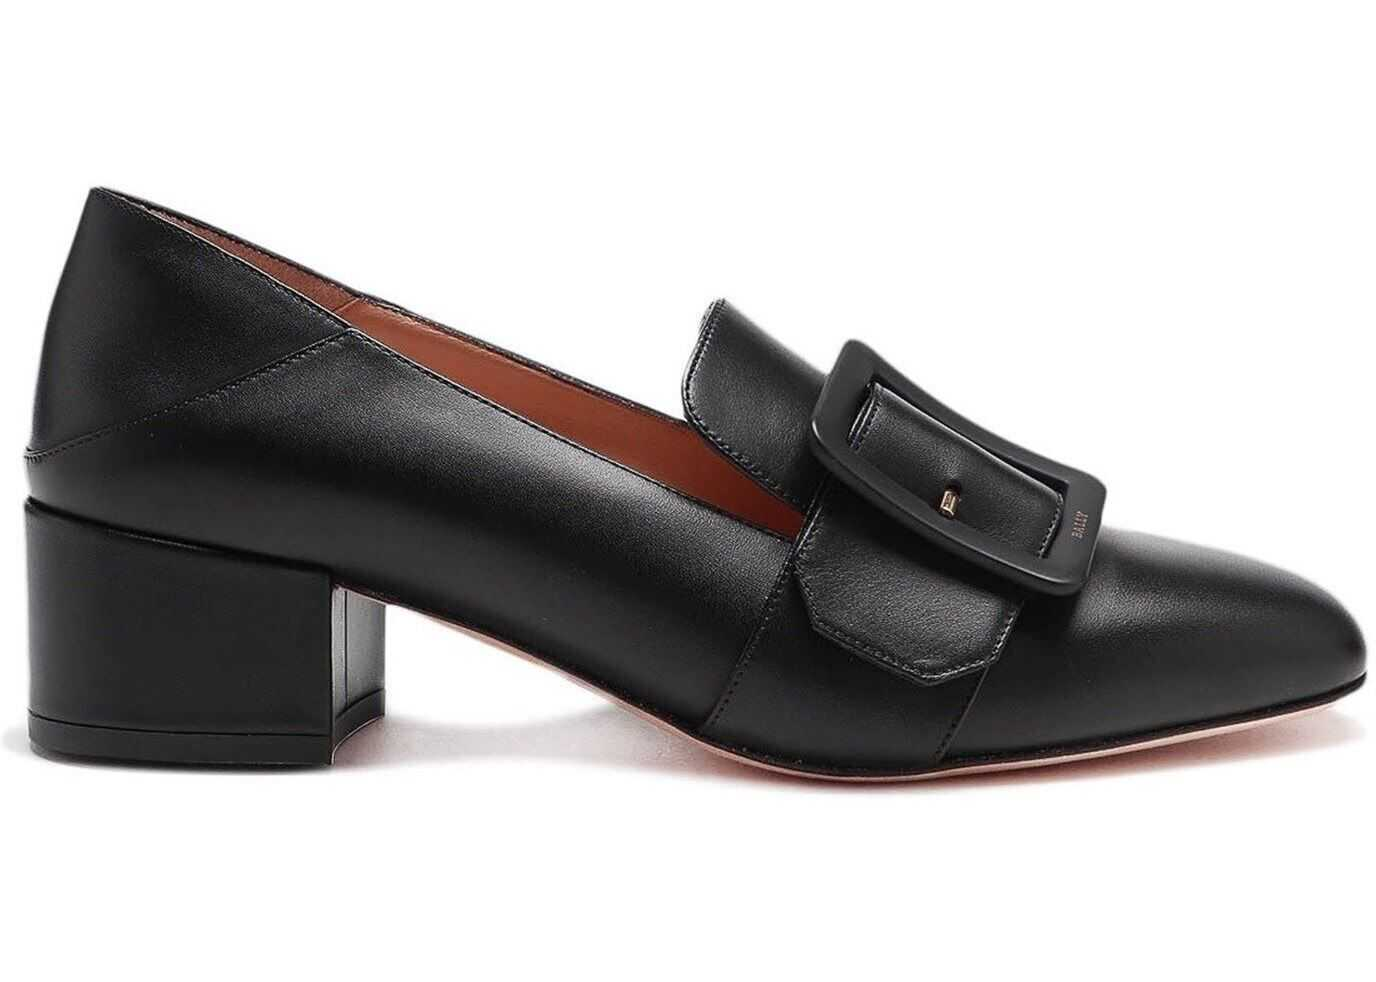 Bally Janelle Loafers Style Pumps Black